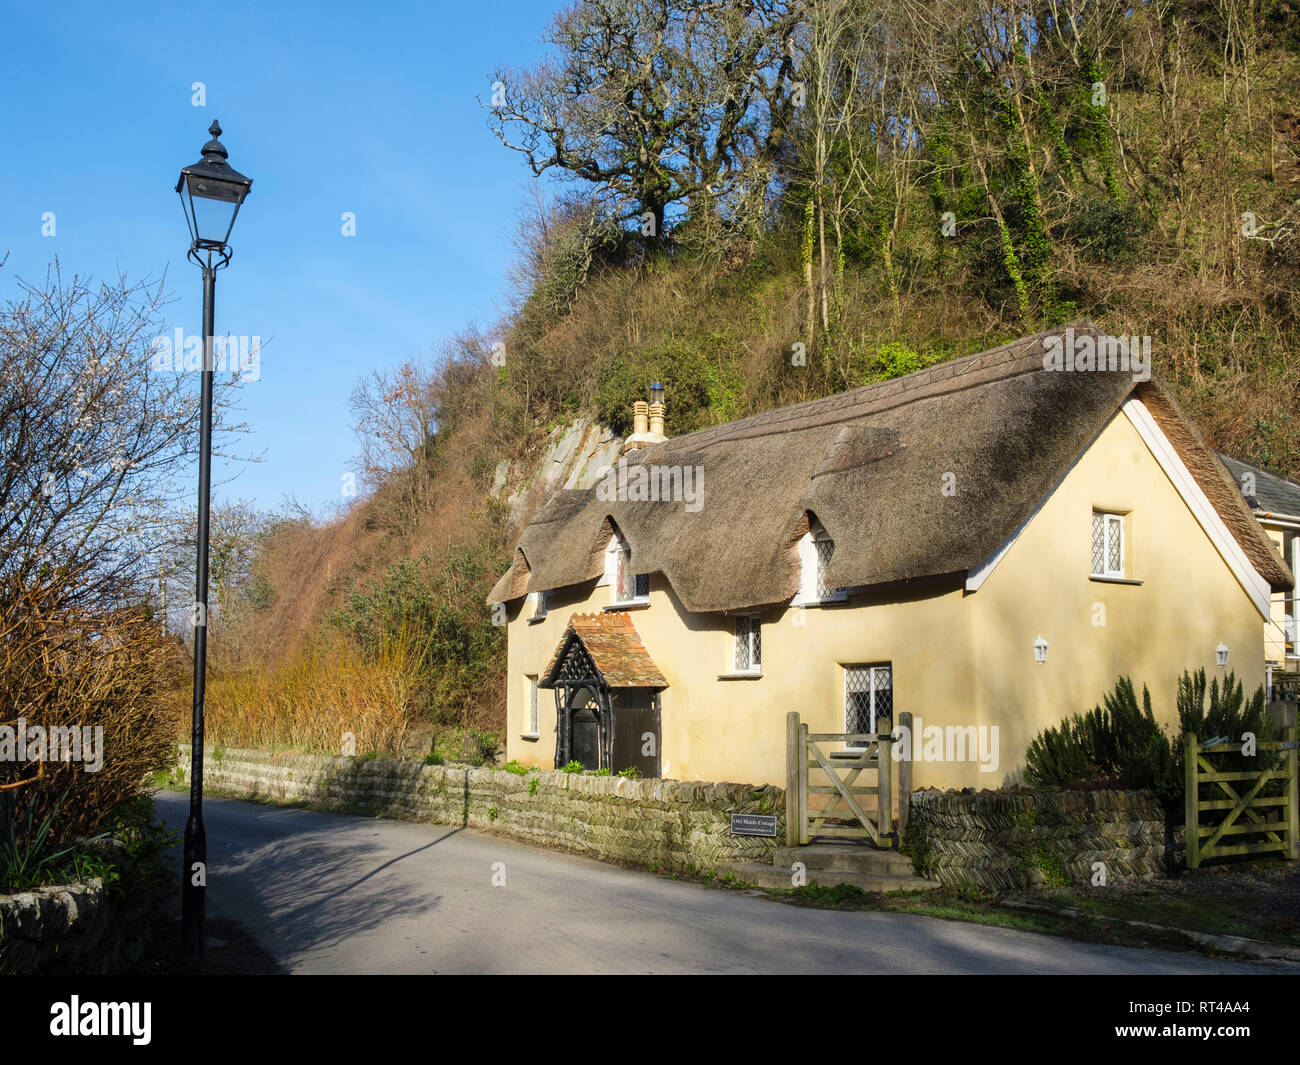 17th century Old Maids Cottage 1653 with a traditional thatched roof in pretty English country village of Lee, North Devon, England, UK, Britain - Stock Image